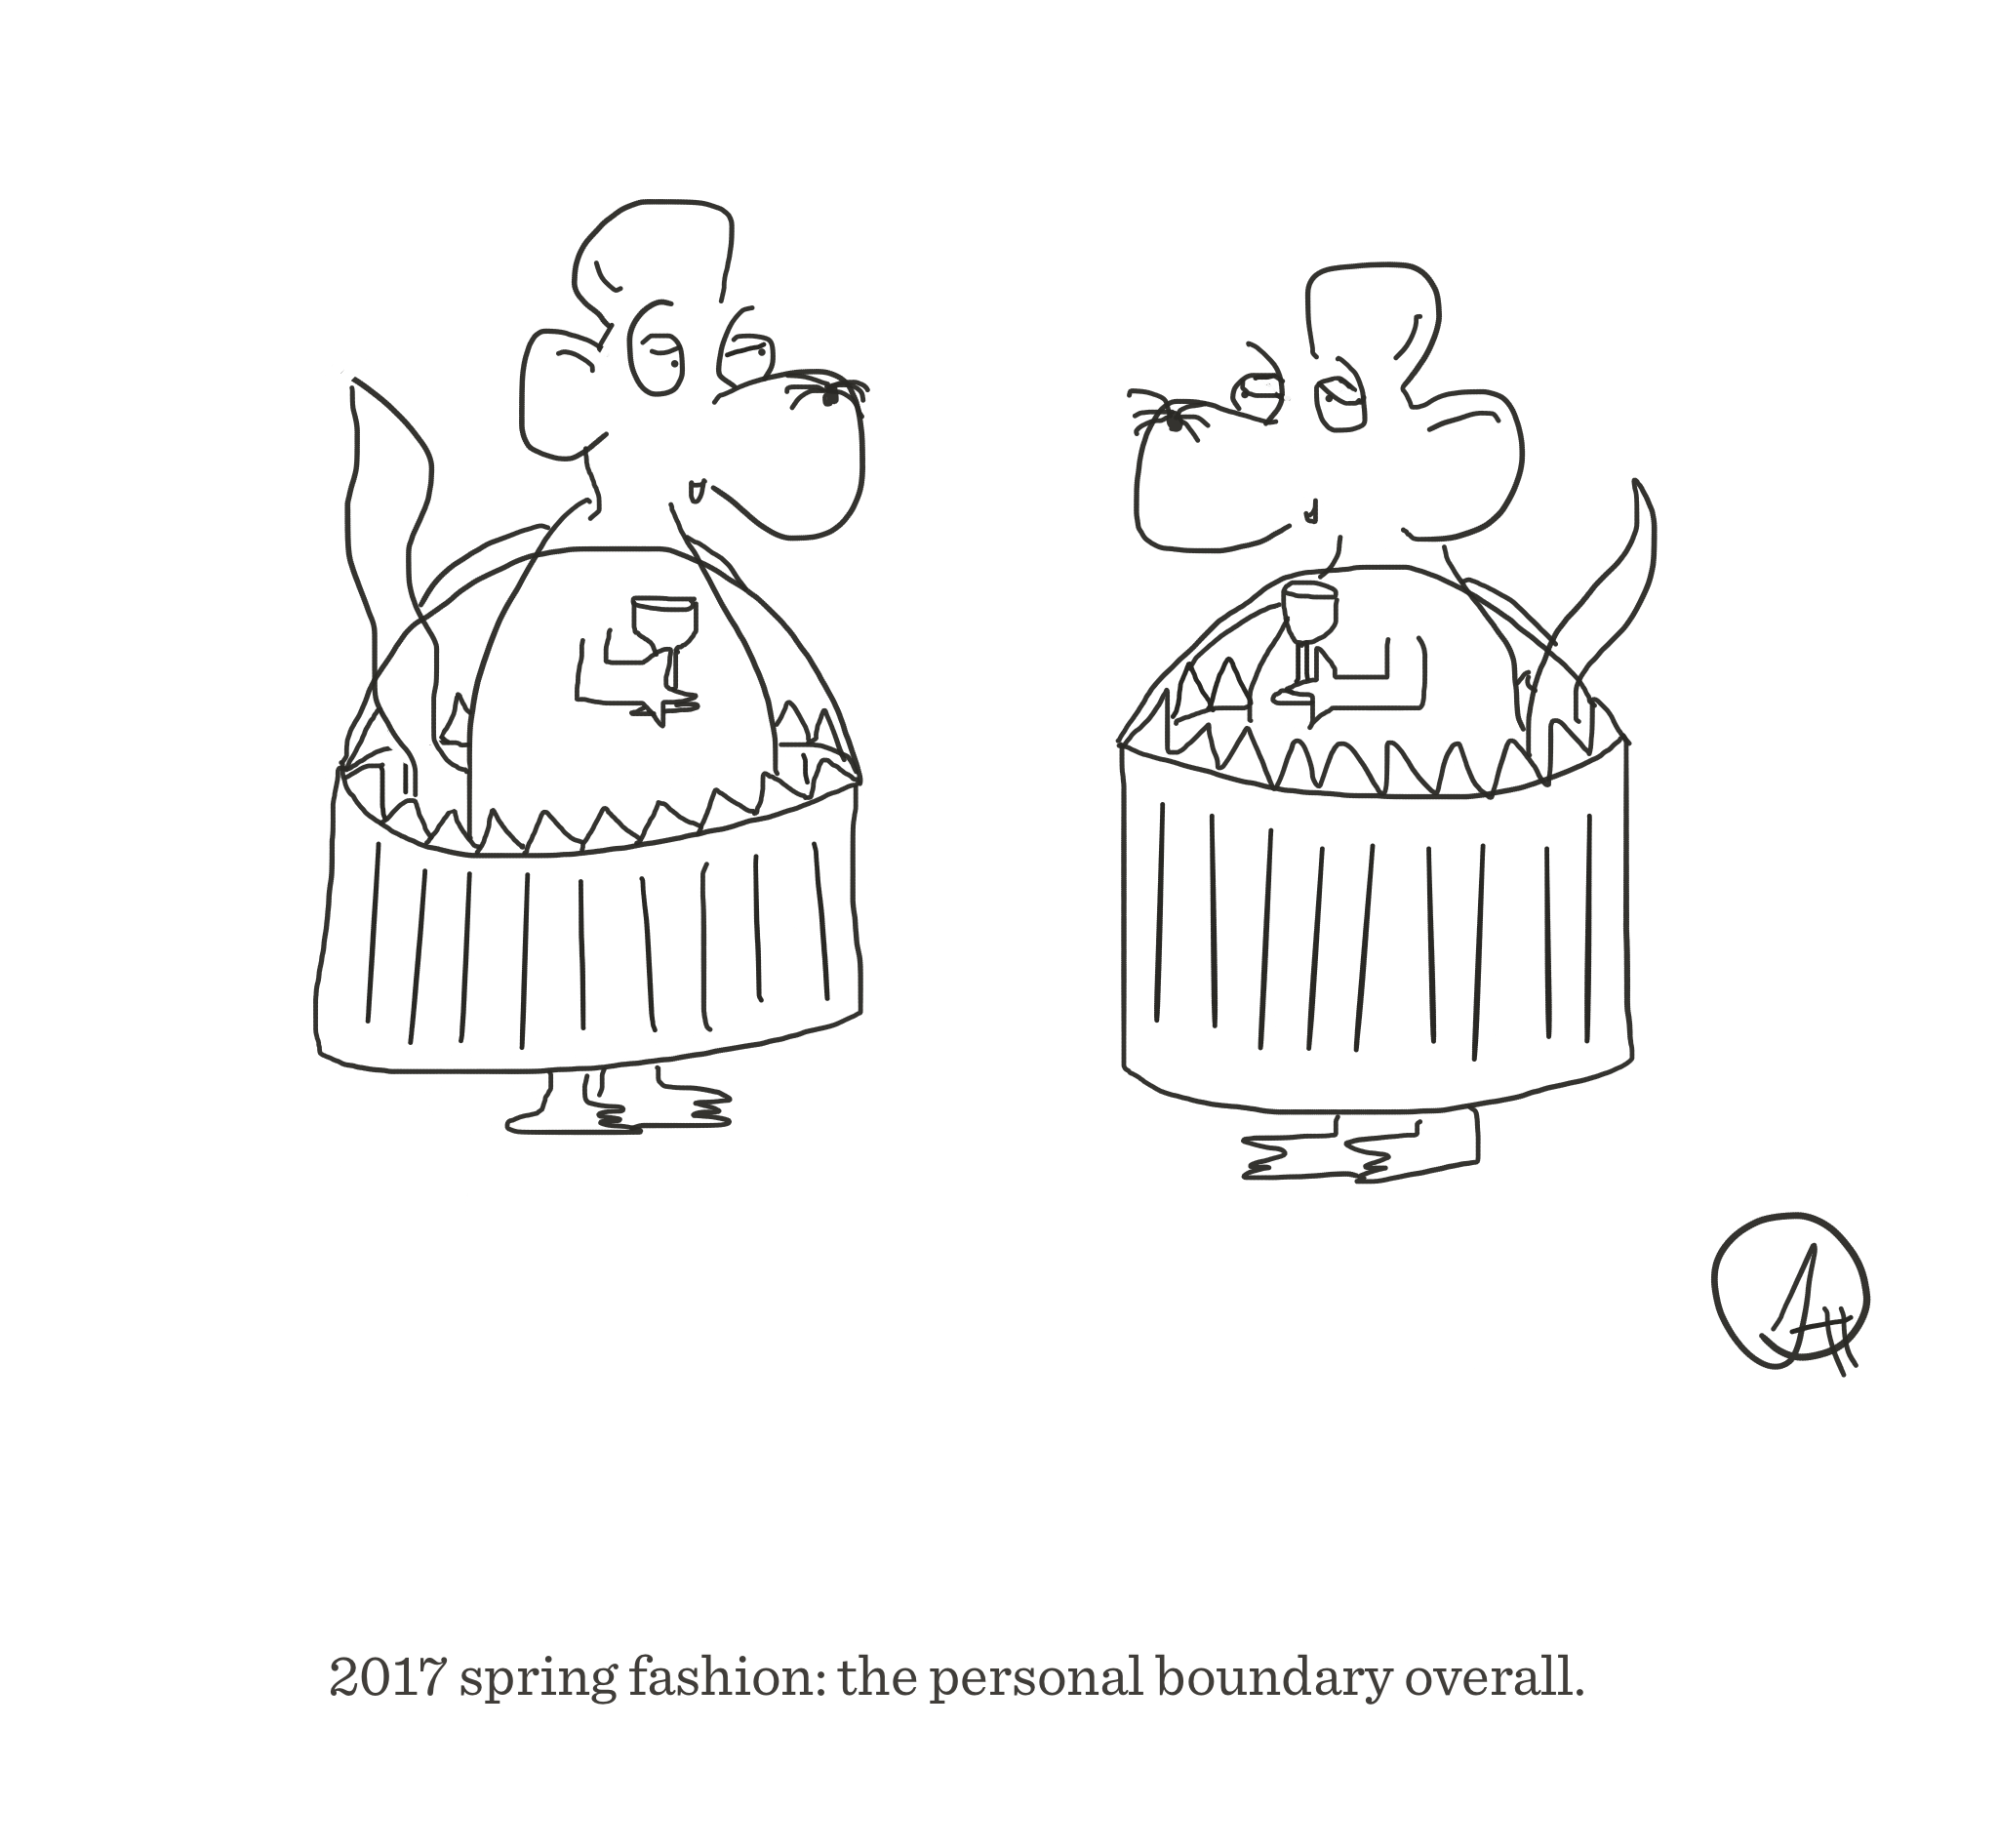 Personal boundary overalls, The Happy Rat cartoon